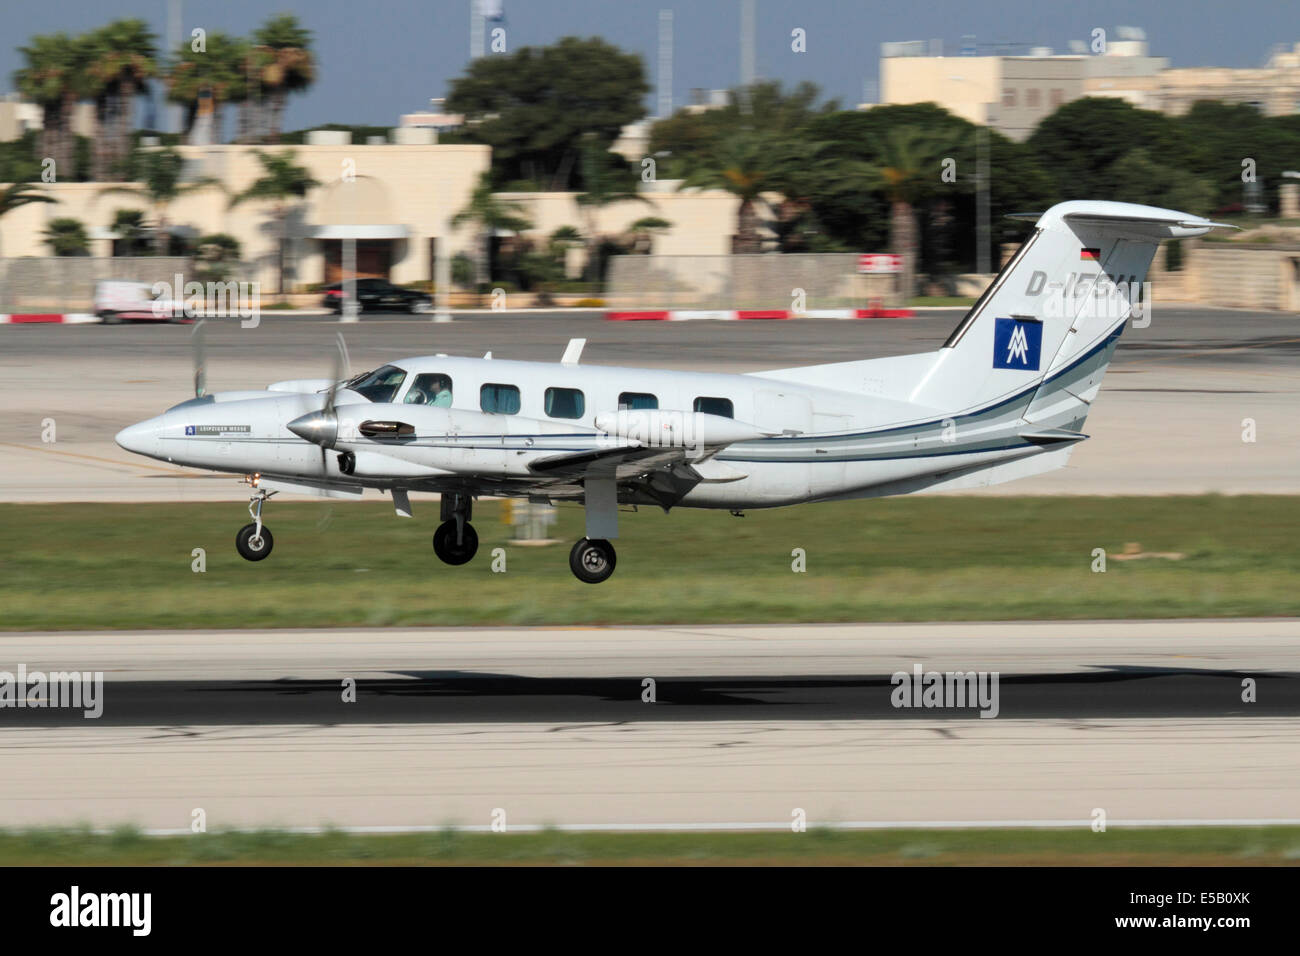 Piper PA-42 Cheyenne III seven-seater aircraft operated by ProAir Aviation over the runway on arrival in Malta - Stock Image